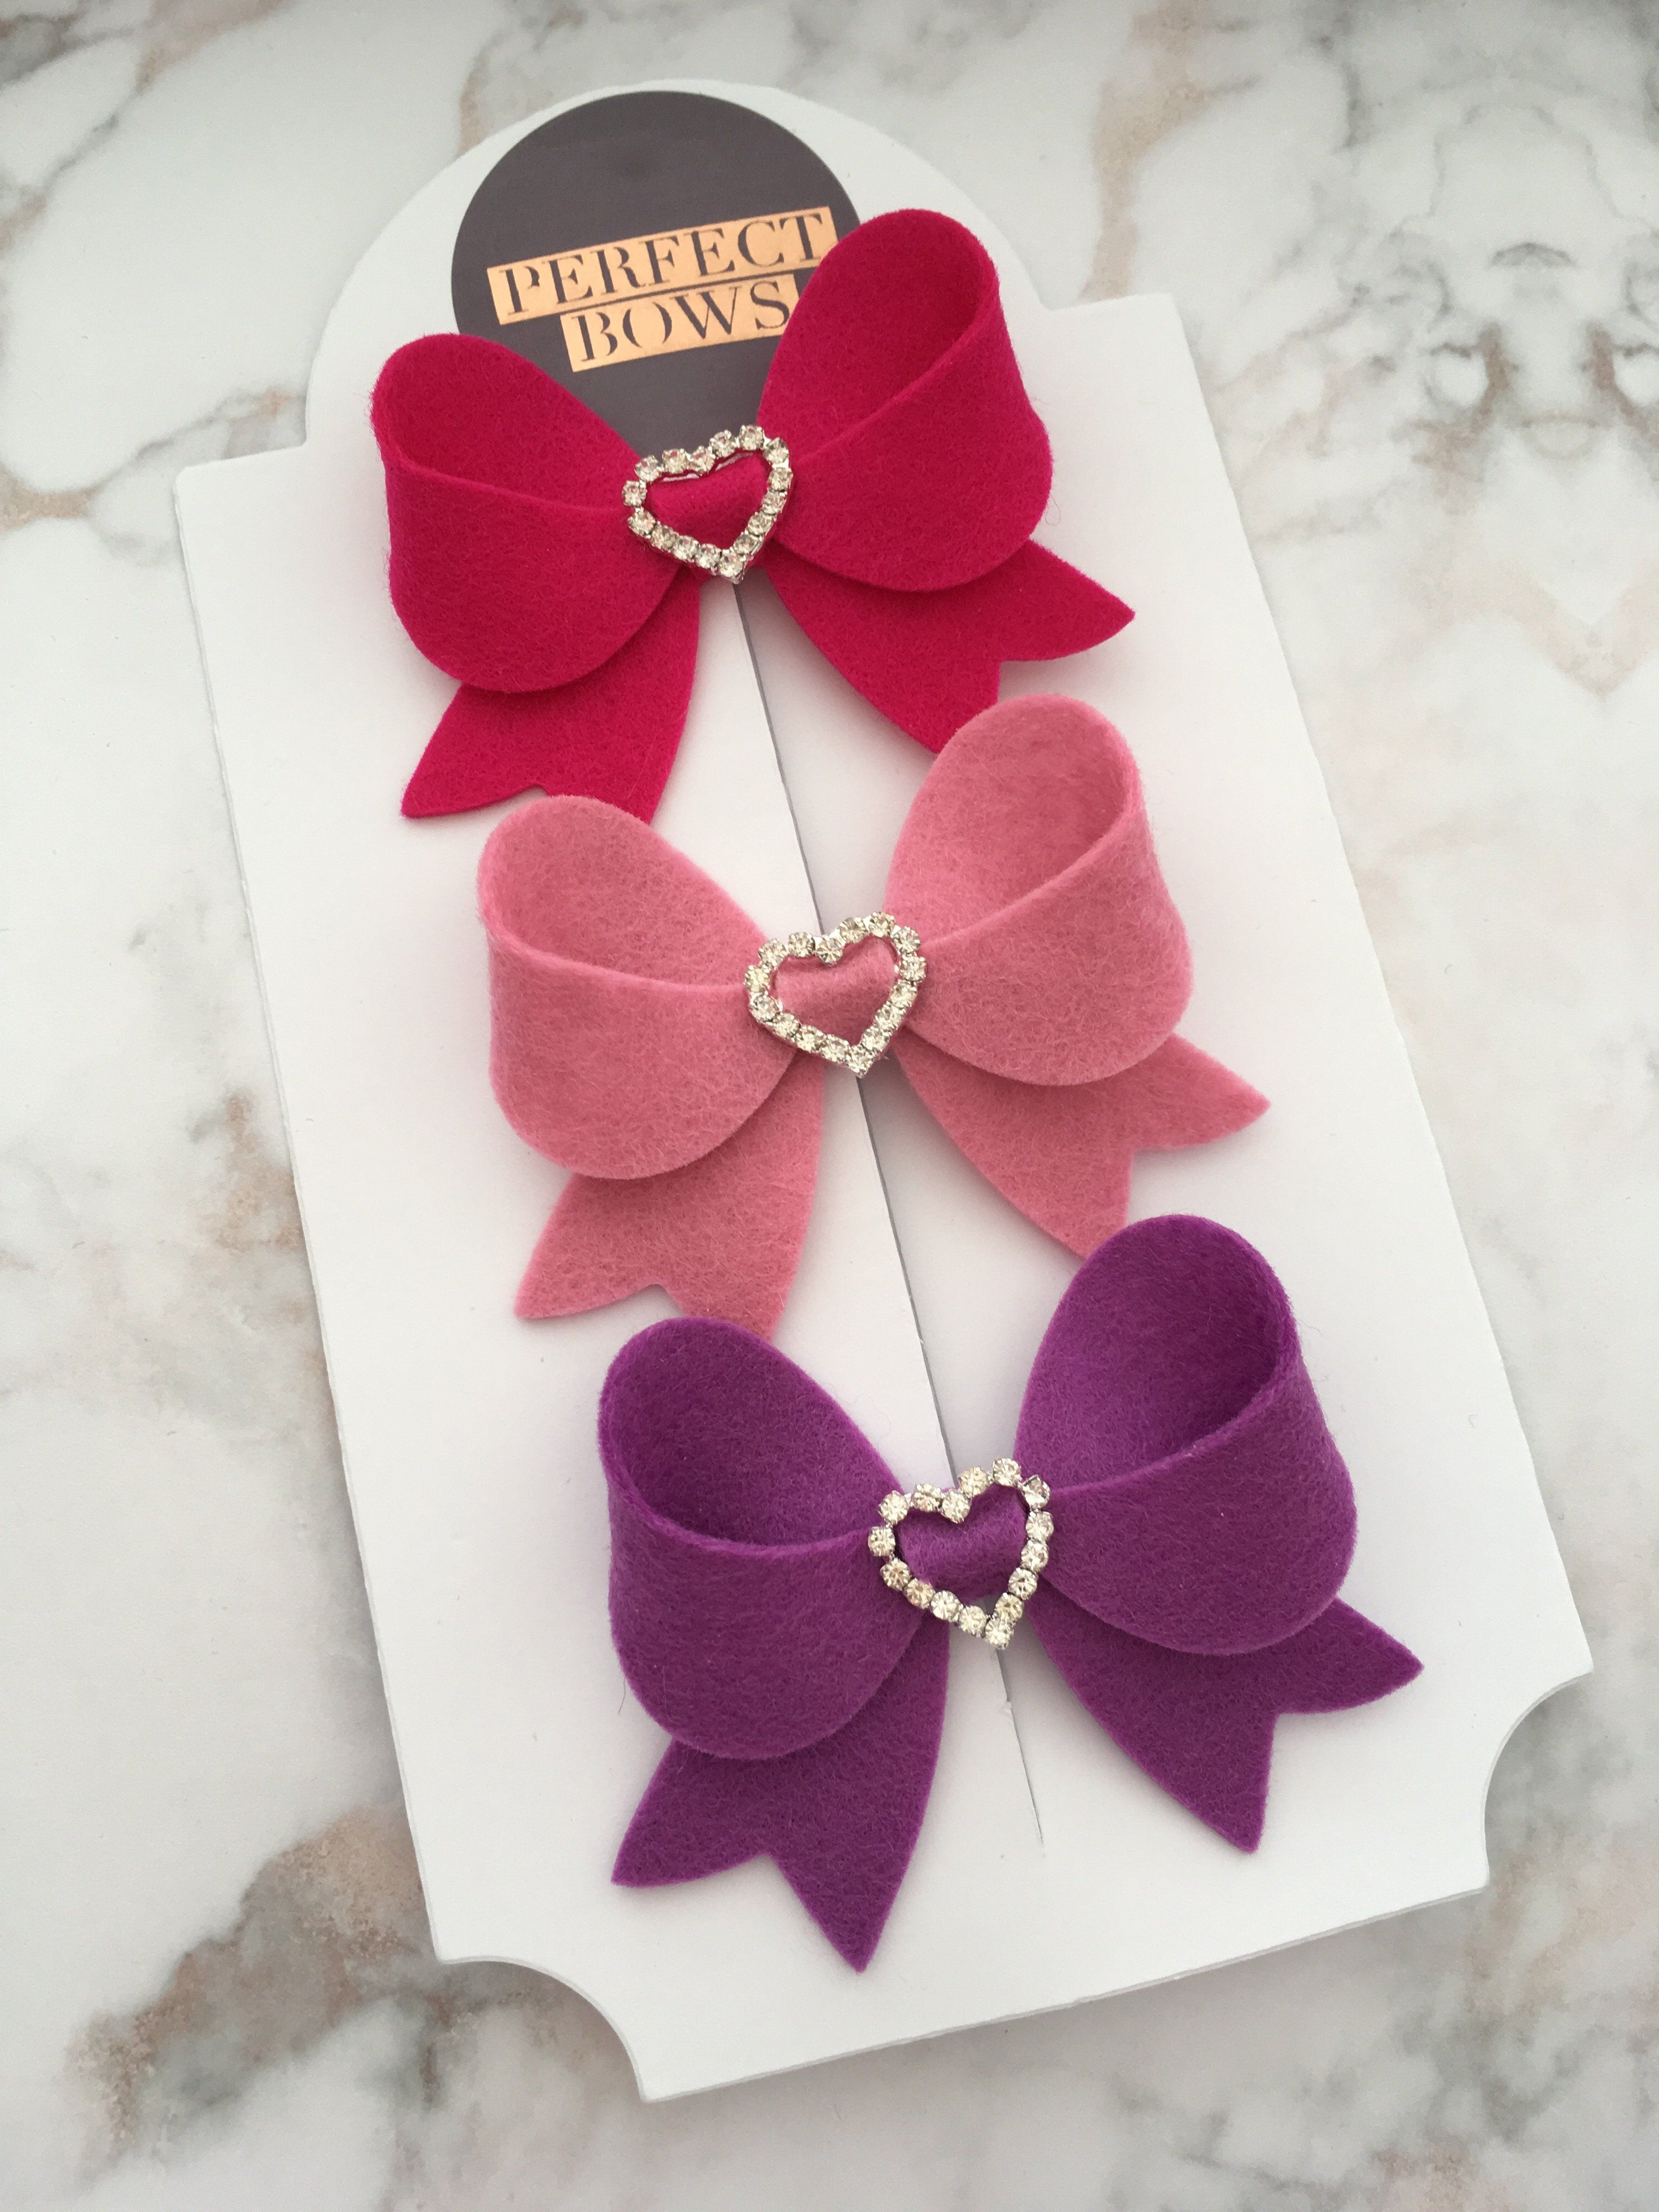 Heart Fancy BowAvailable on 3 coloursAvailable on a clip or a stretchy nylon headband which is one size, if you would